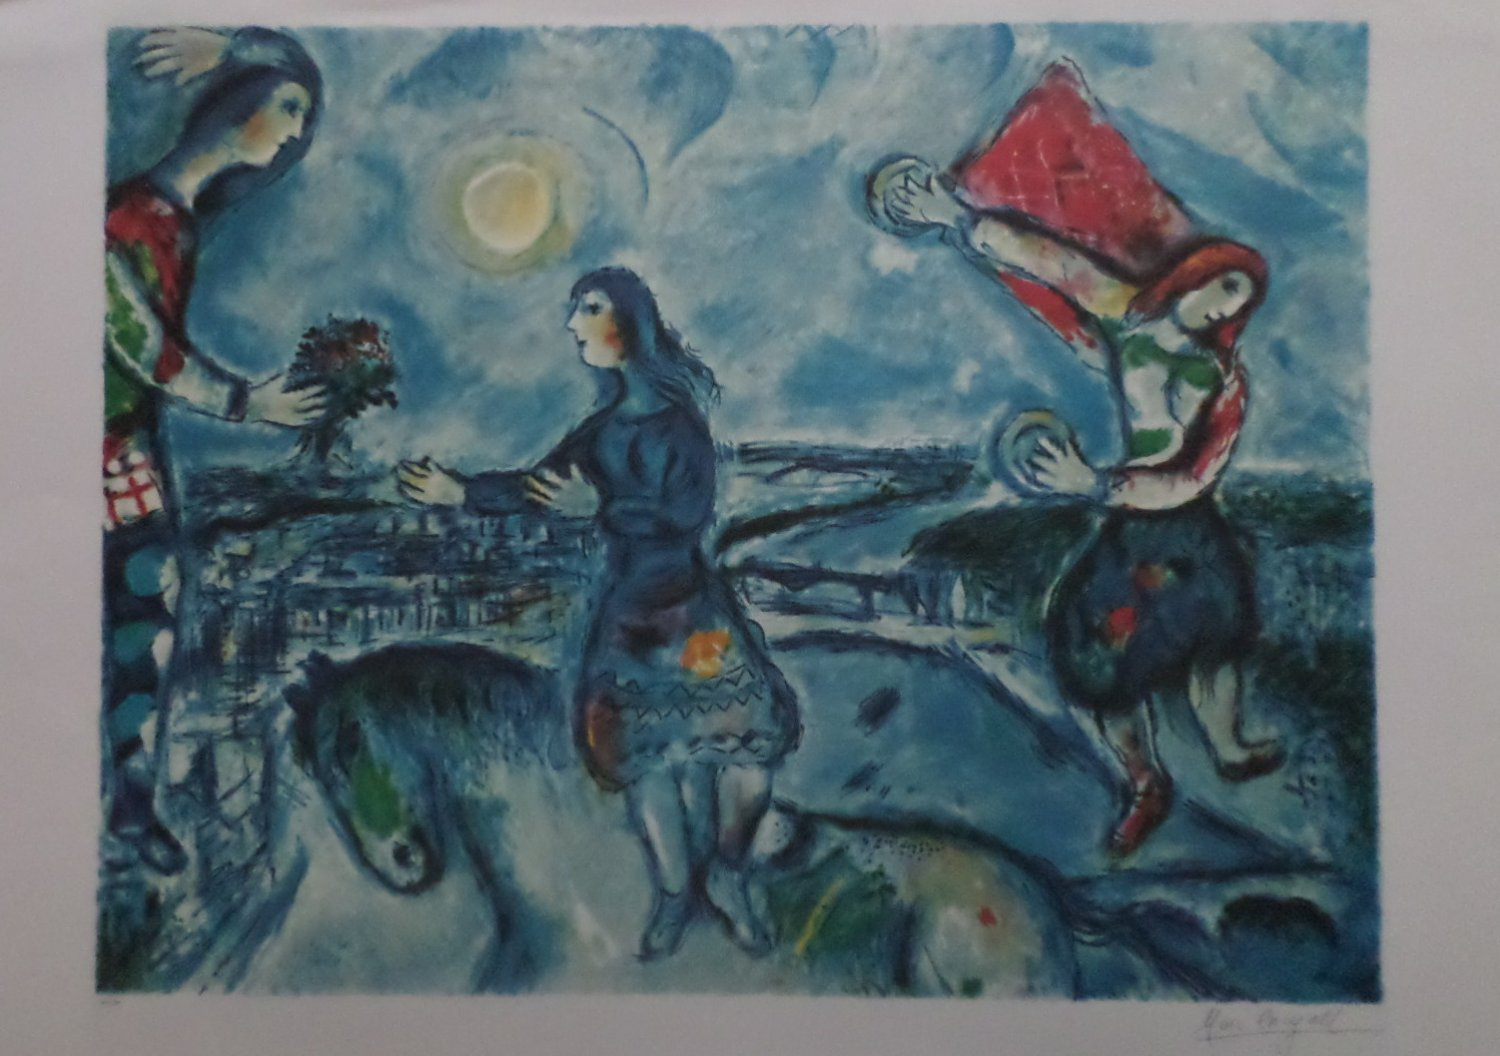 Marc chagall lovers over paris limited edition lithograph for Biographie de marc chagall